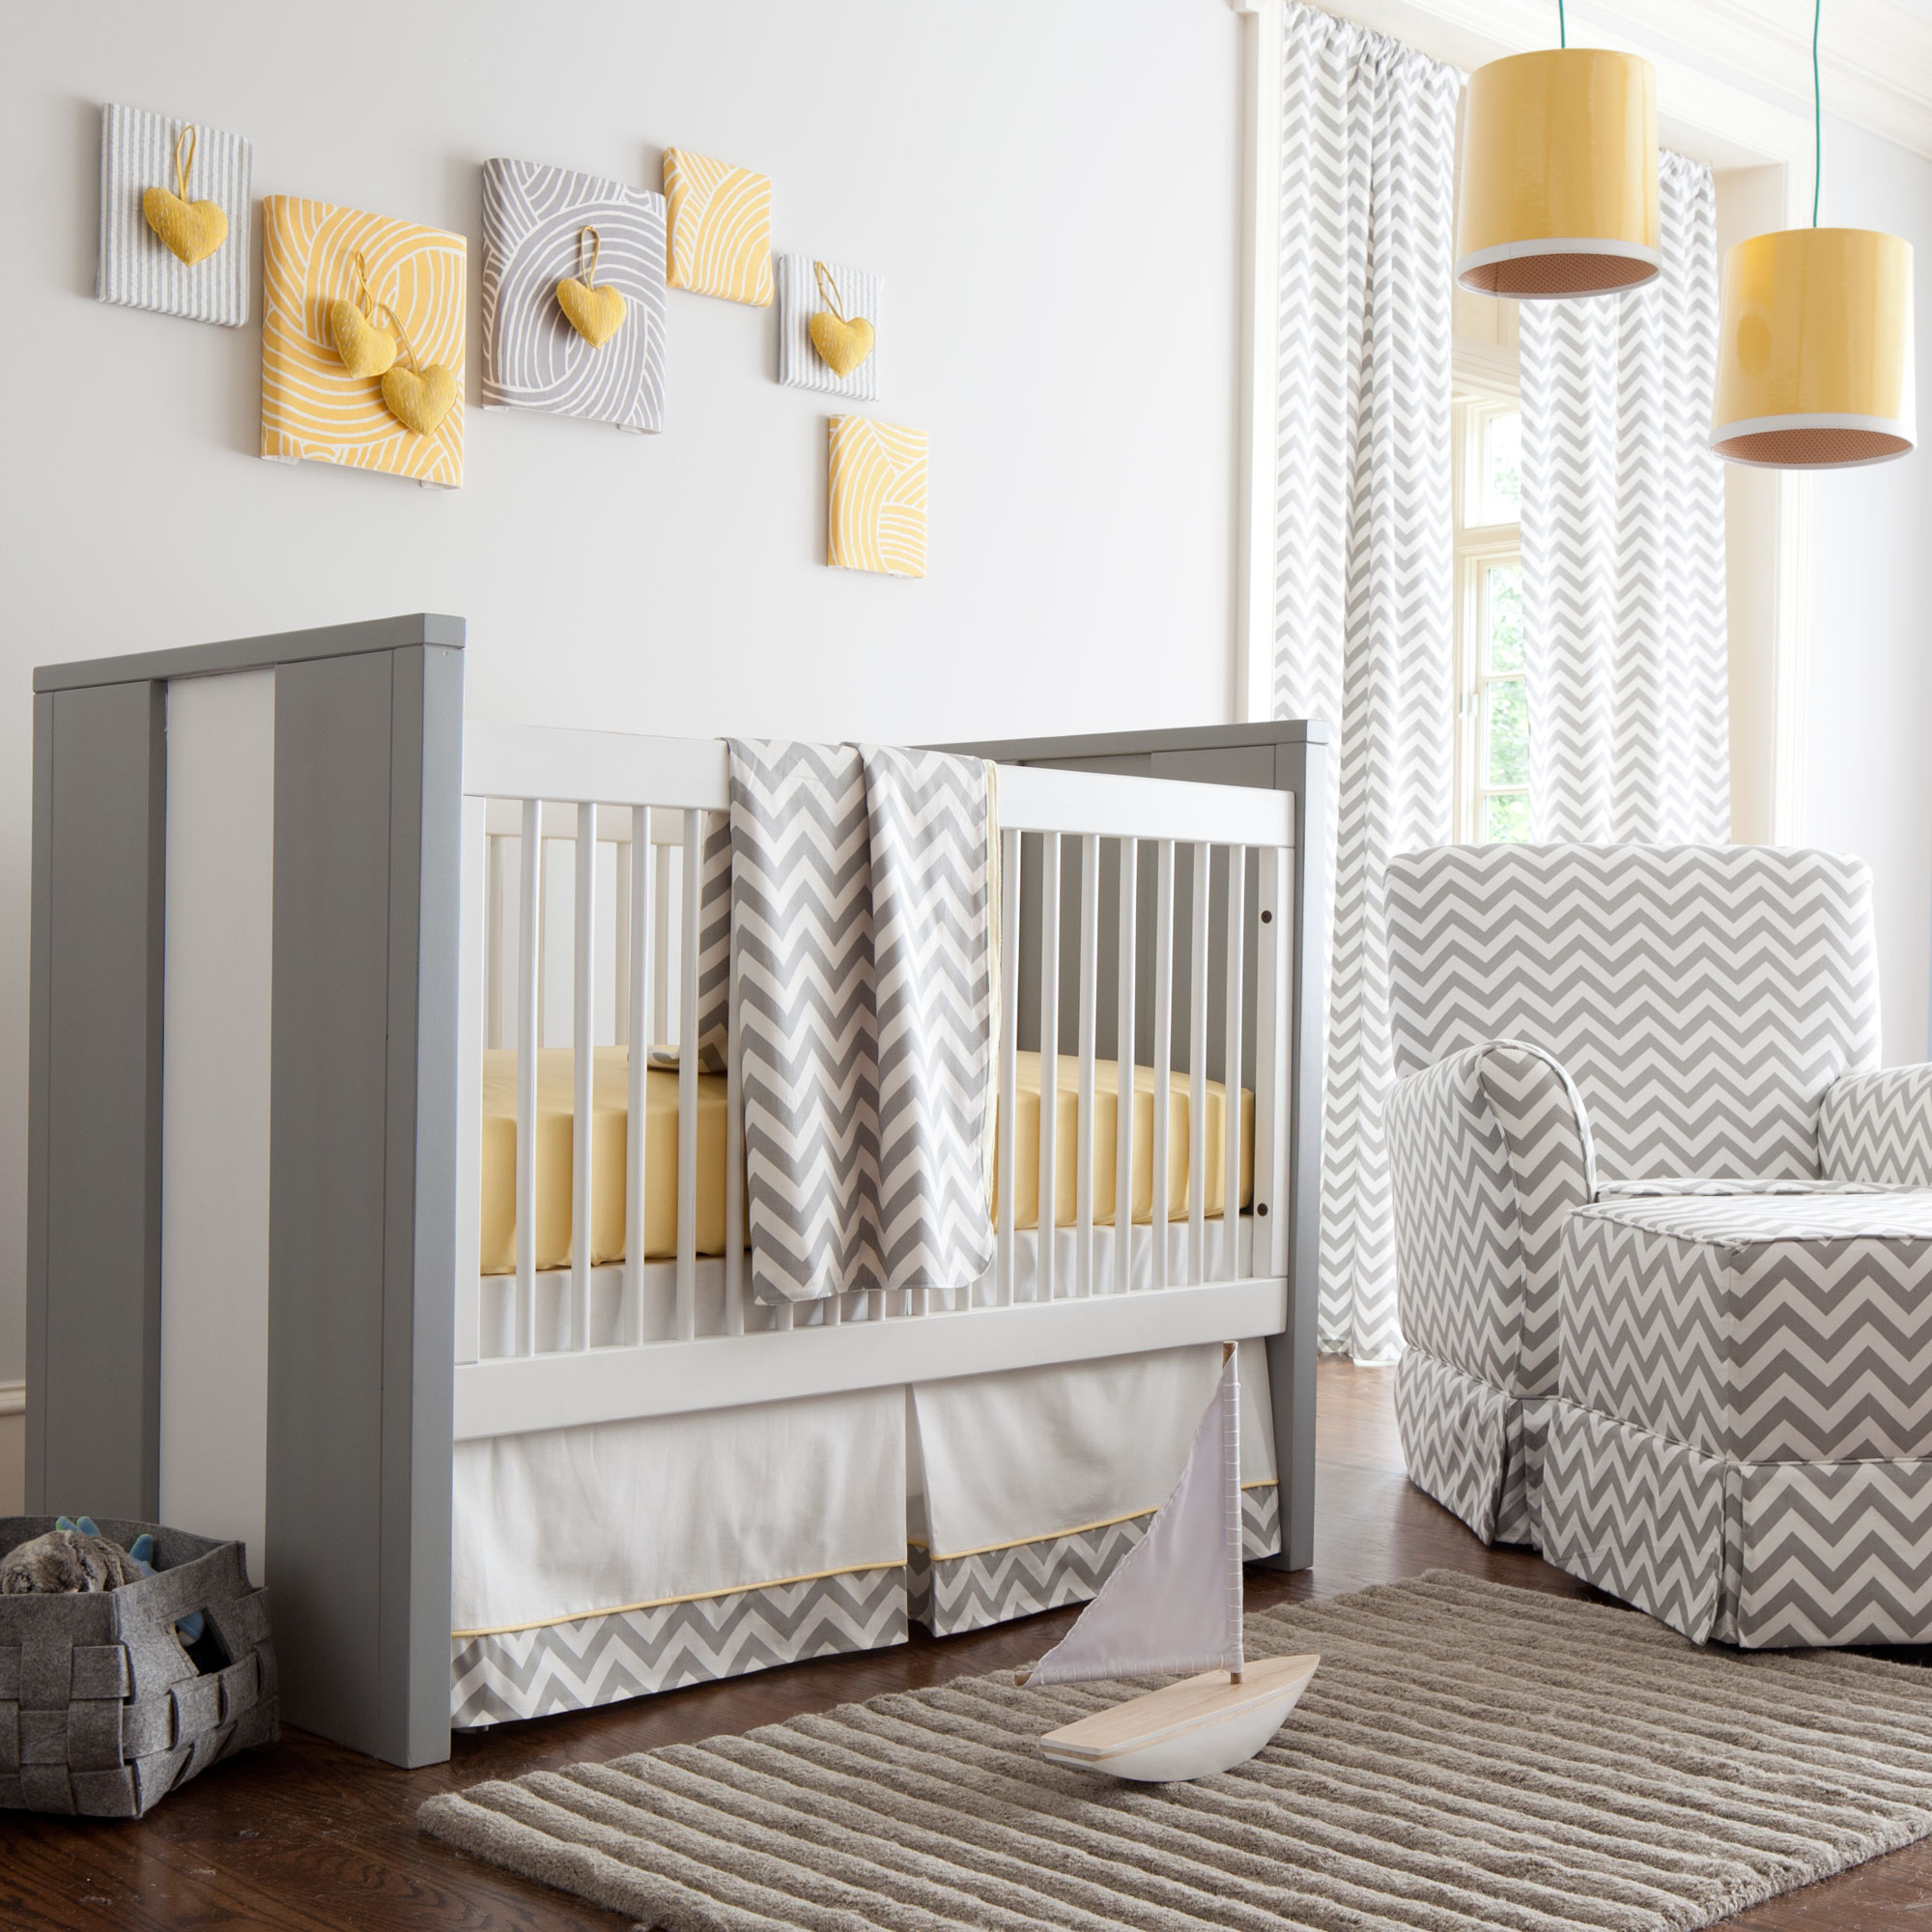 Yellow and Gray Nursery Bedding save